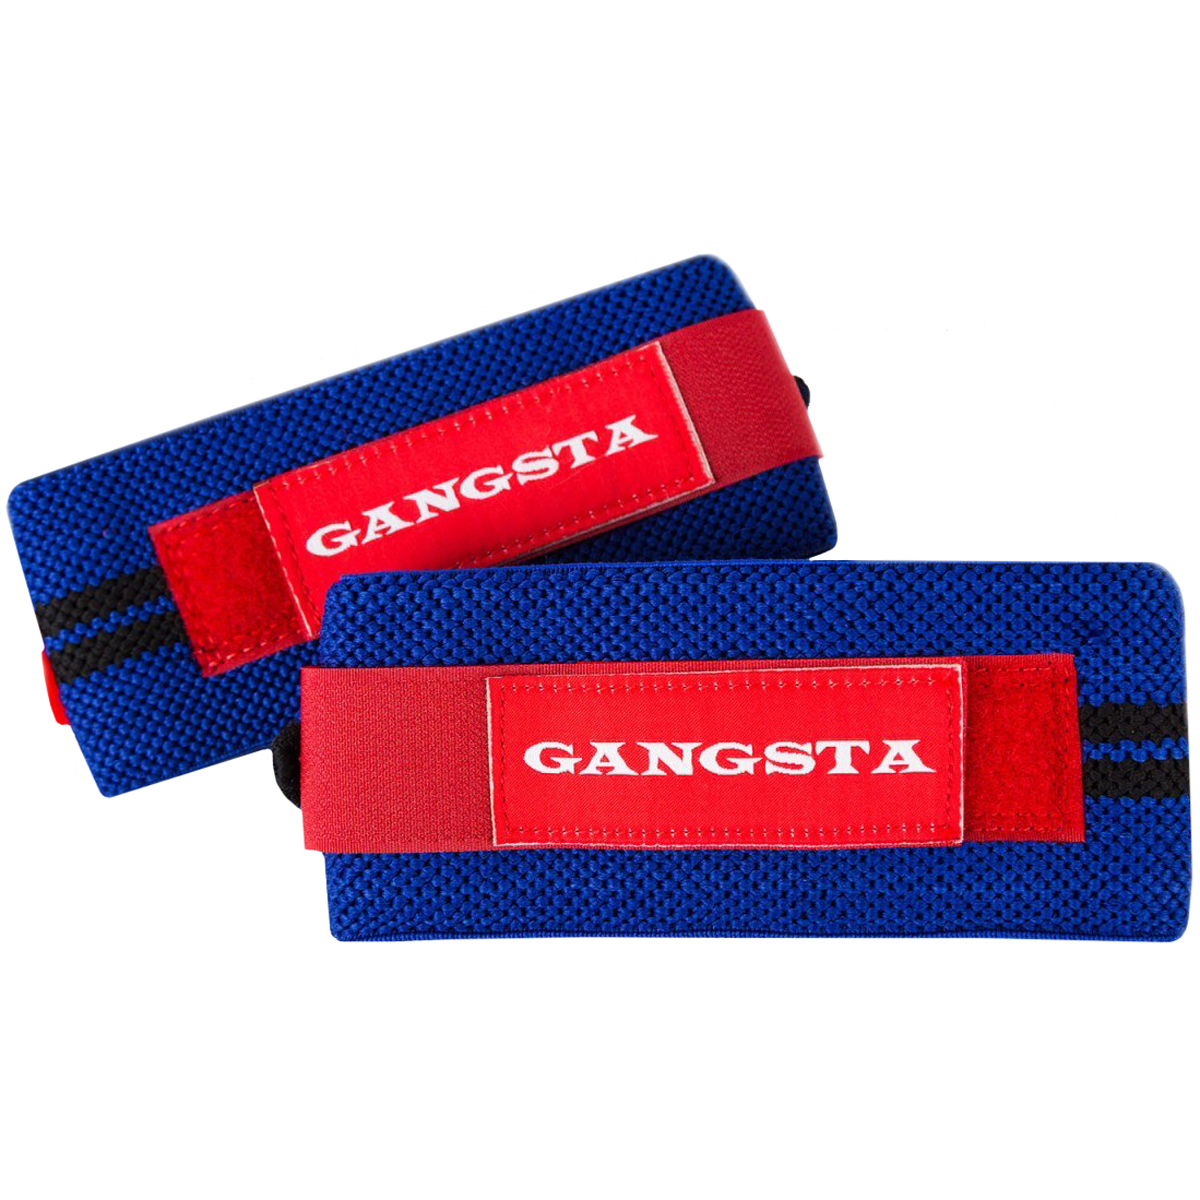 Sling-Shot-Gangsta-Wraps-by-Mark-Bell-IPF-approved-weight-lifting-wrist-support thumbnail 5